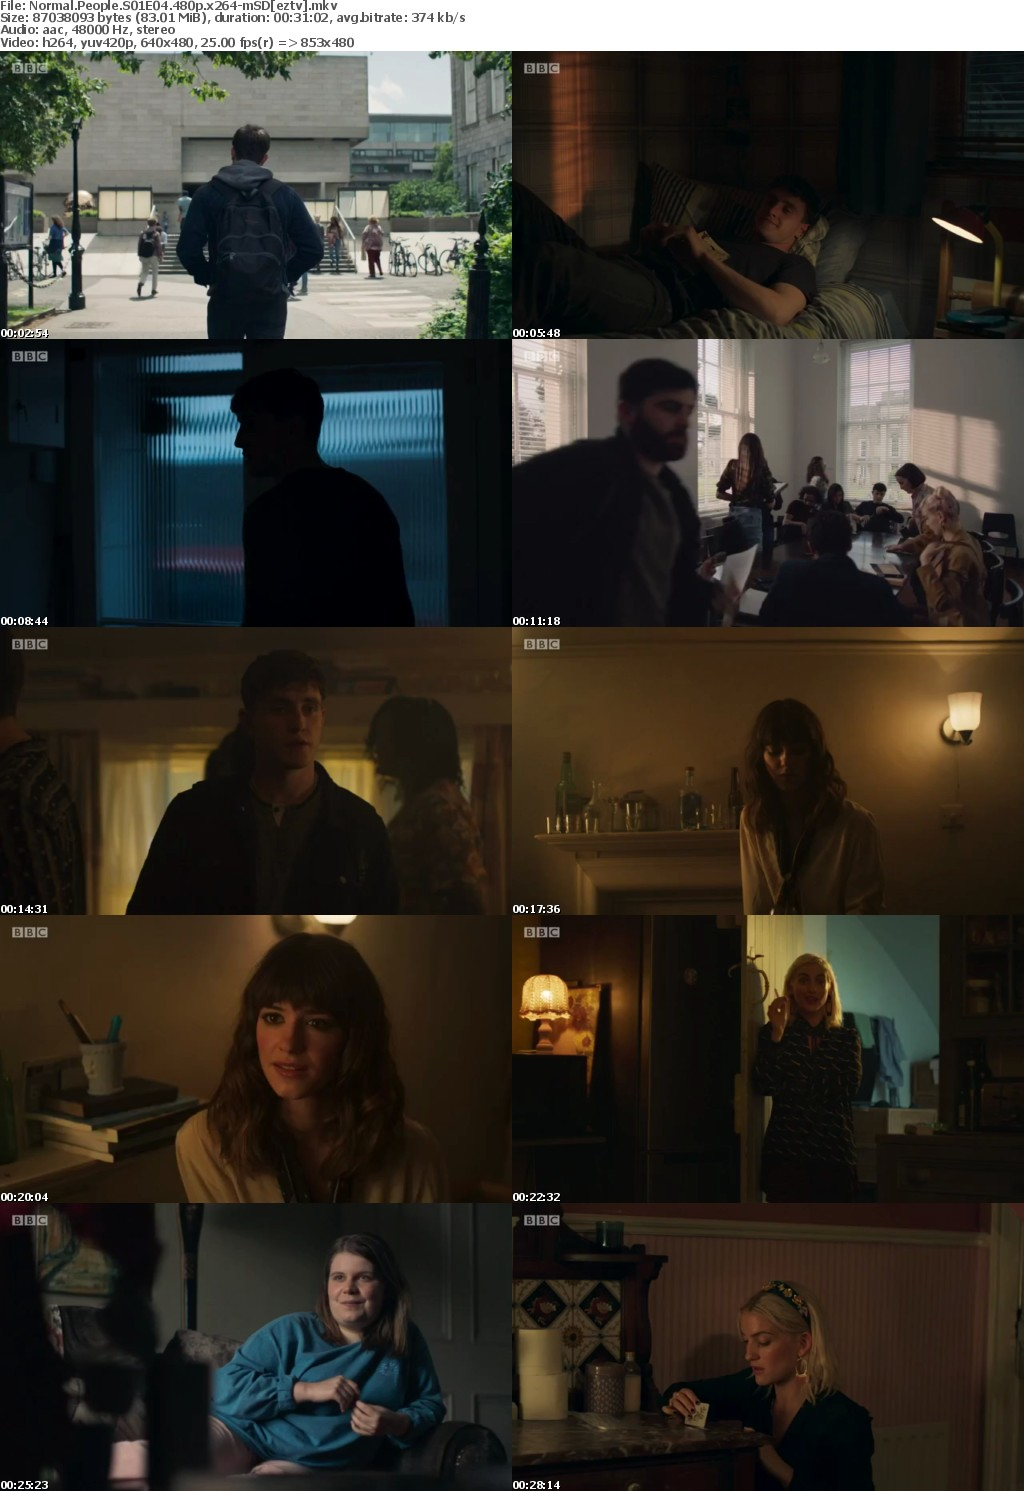 Normal People S01E04 480p x264-mSD